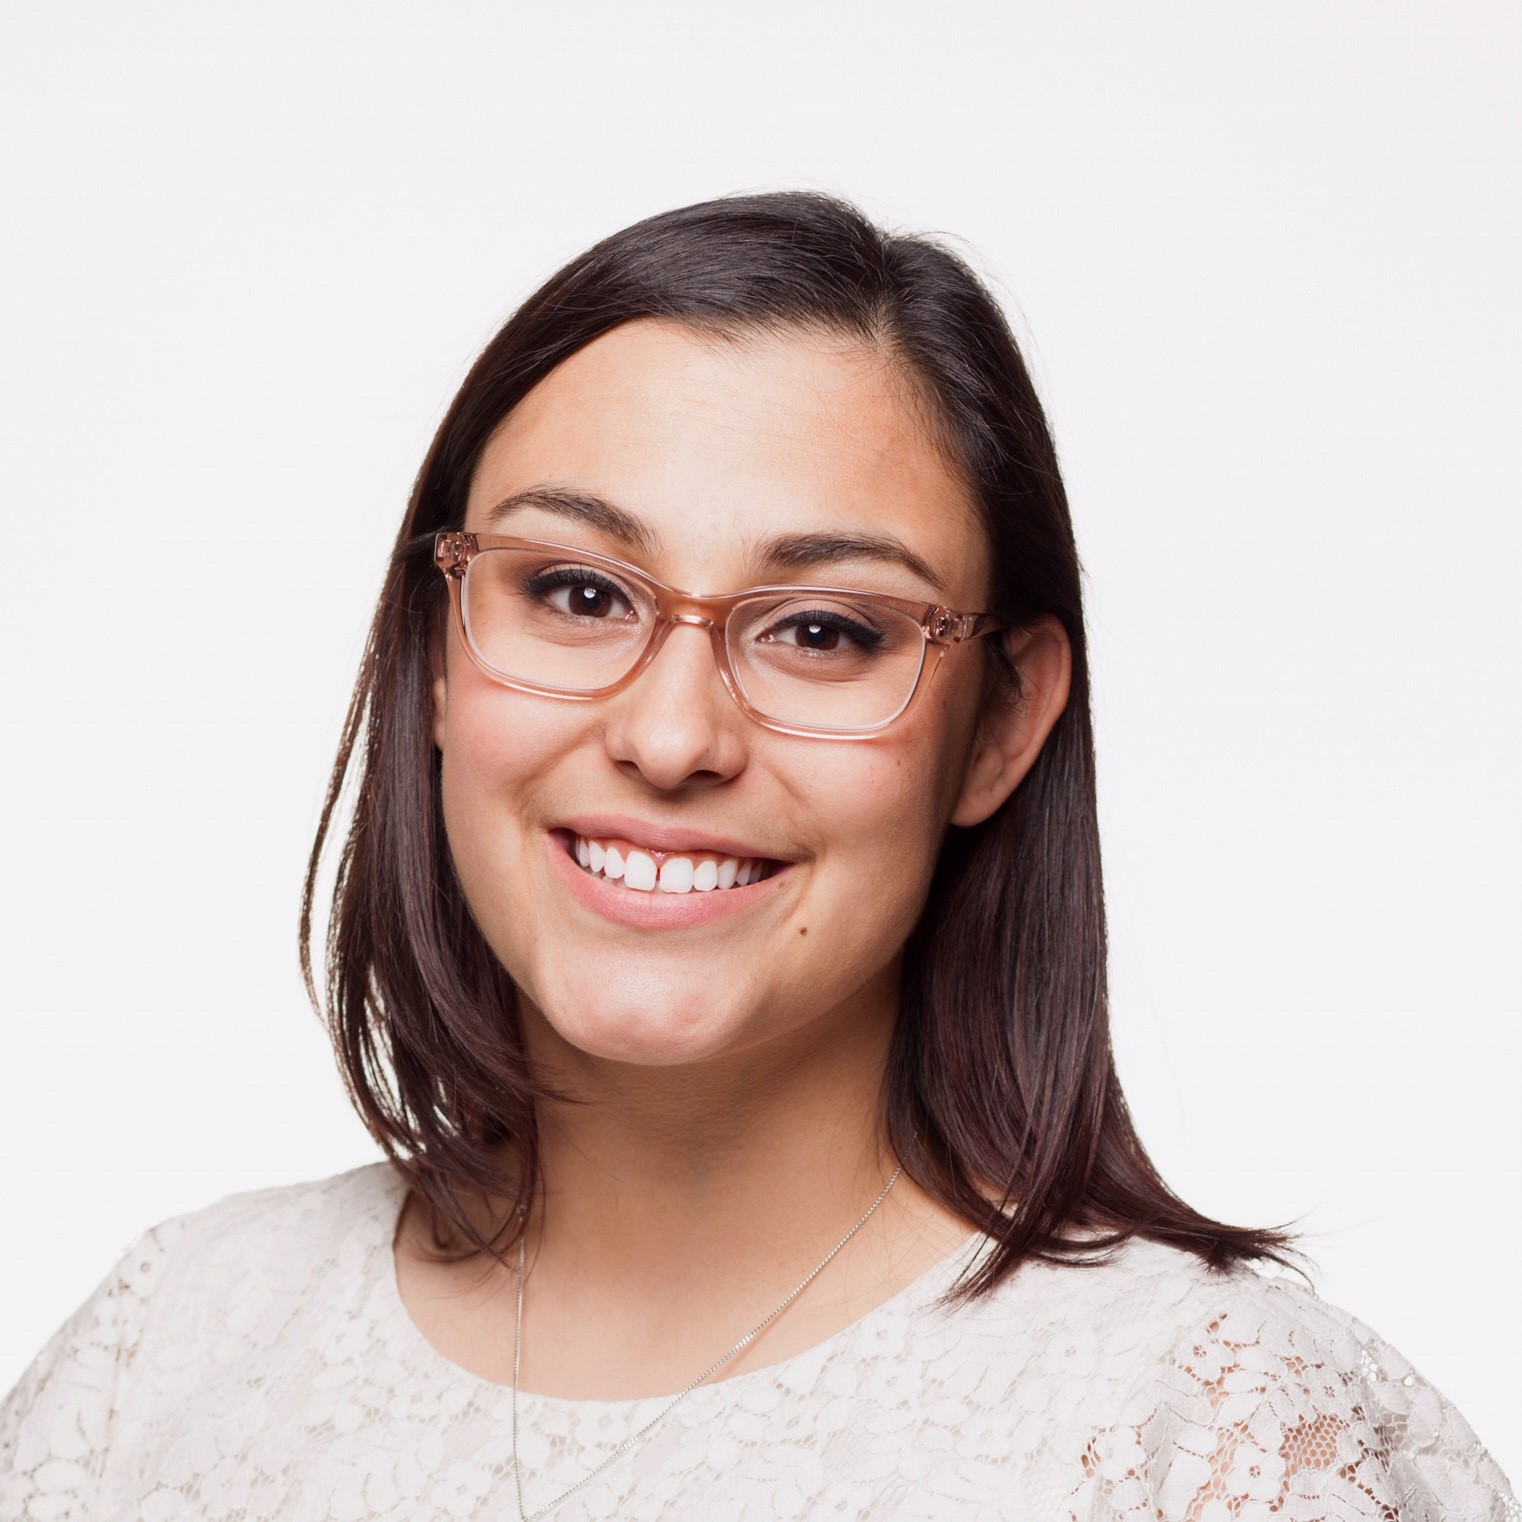 Sinehan Kerman, Digital Marketing Manager